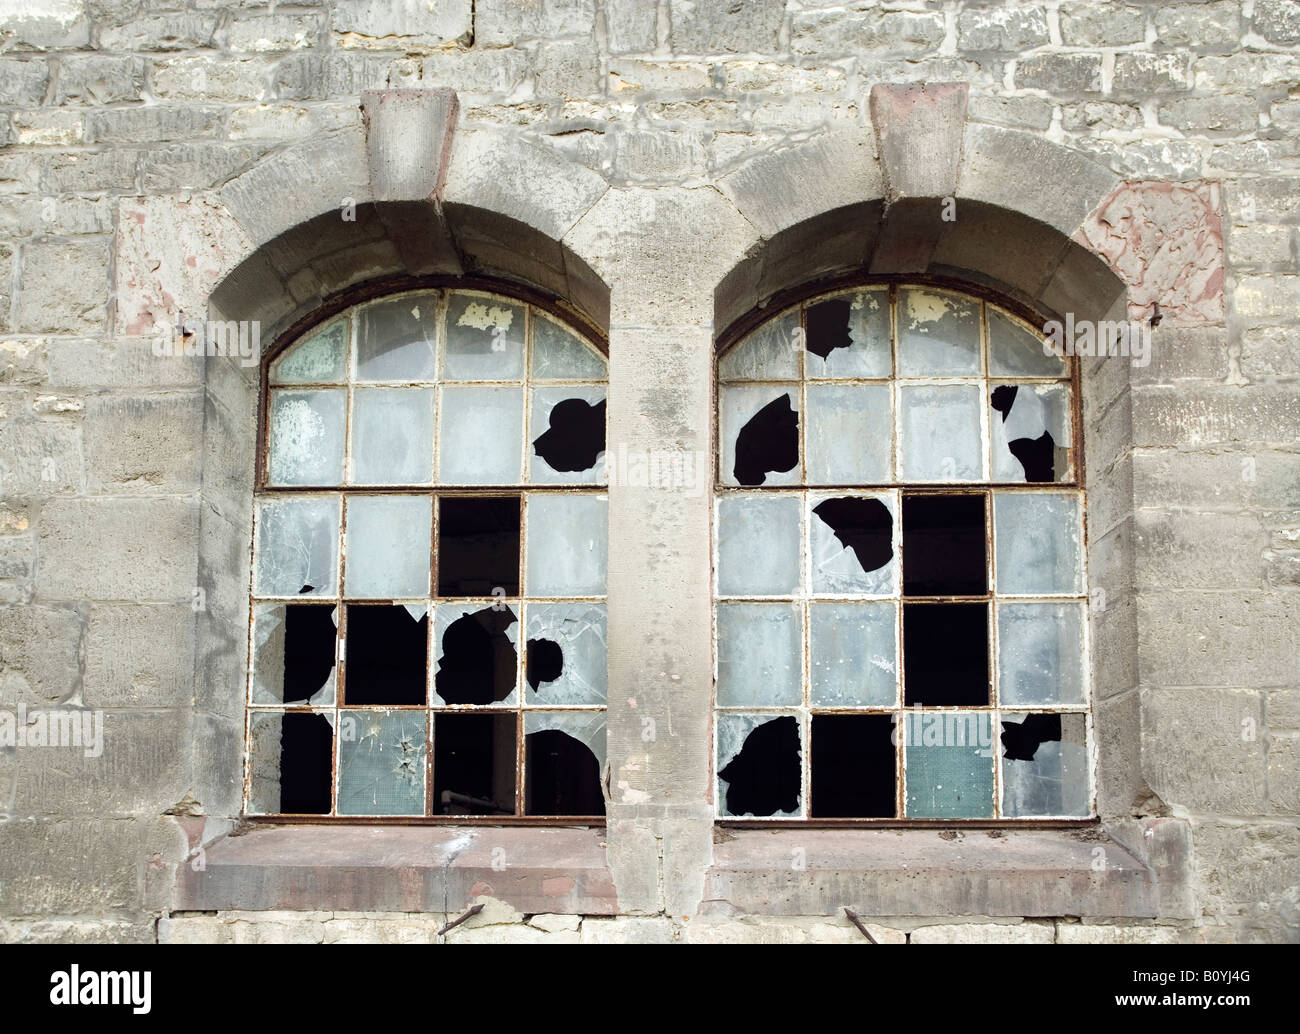 Abandoned Building - Stock Image